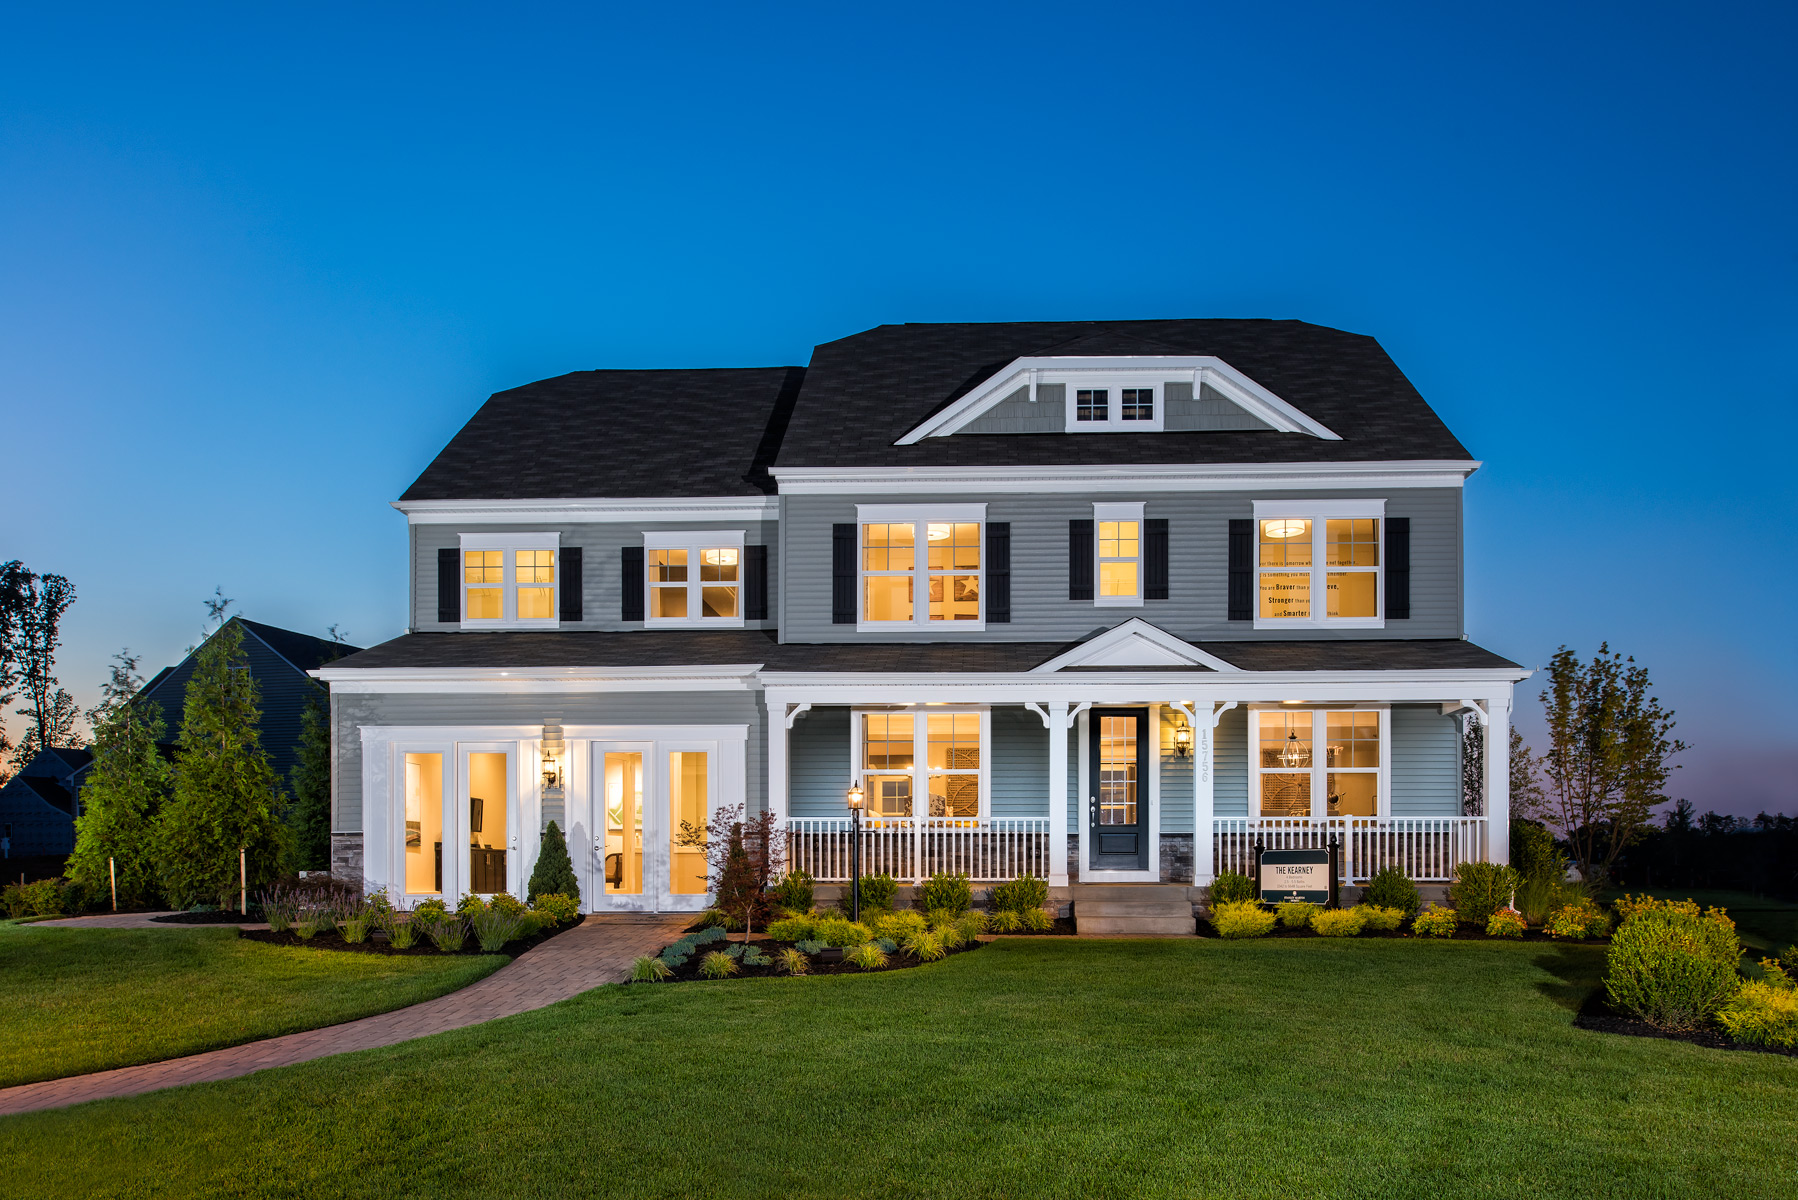 Stanley martin homes debuts their newest home designs in for Stanley home designs